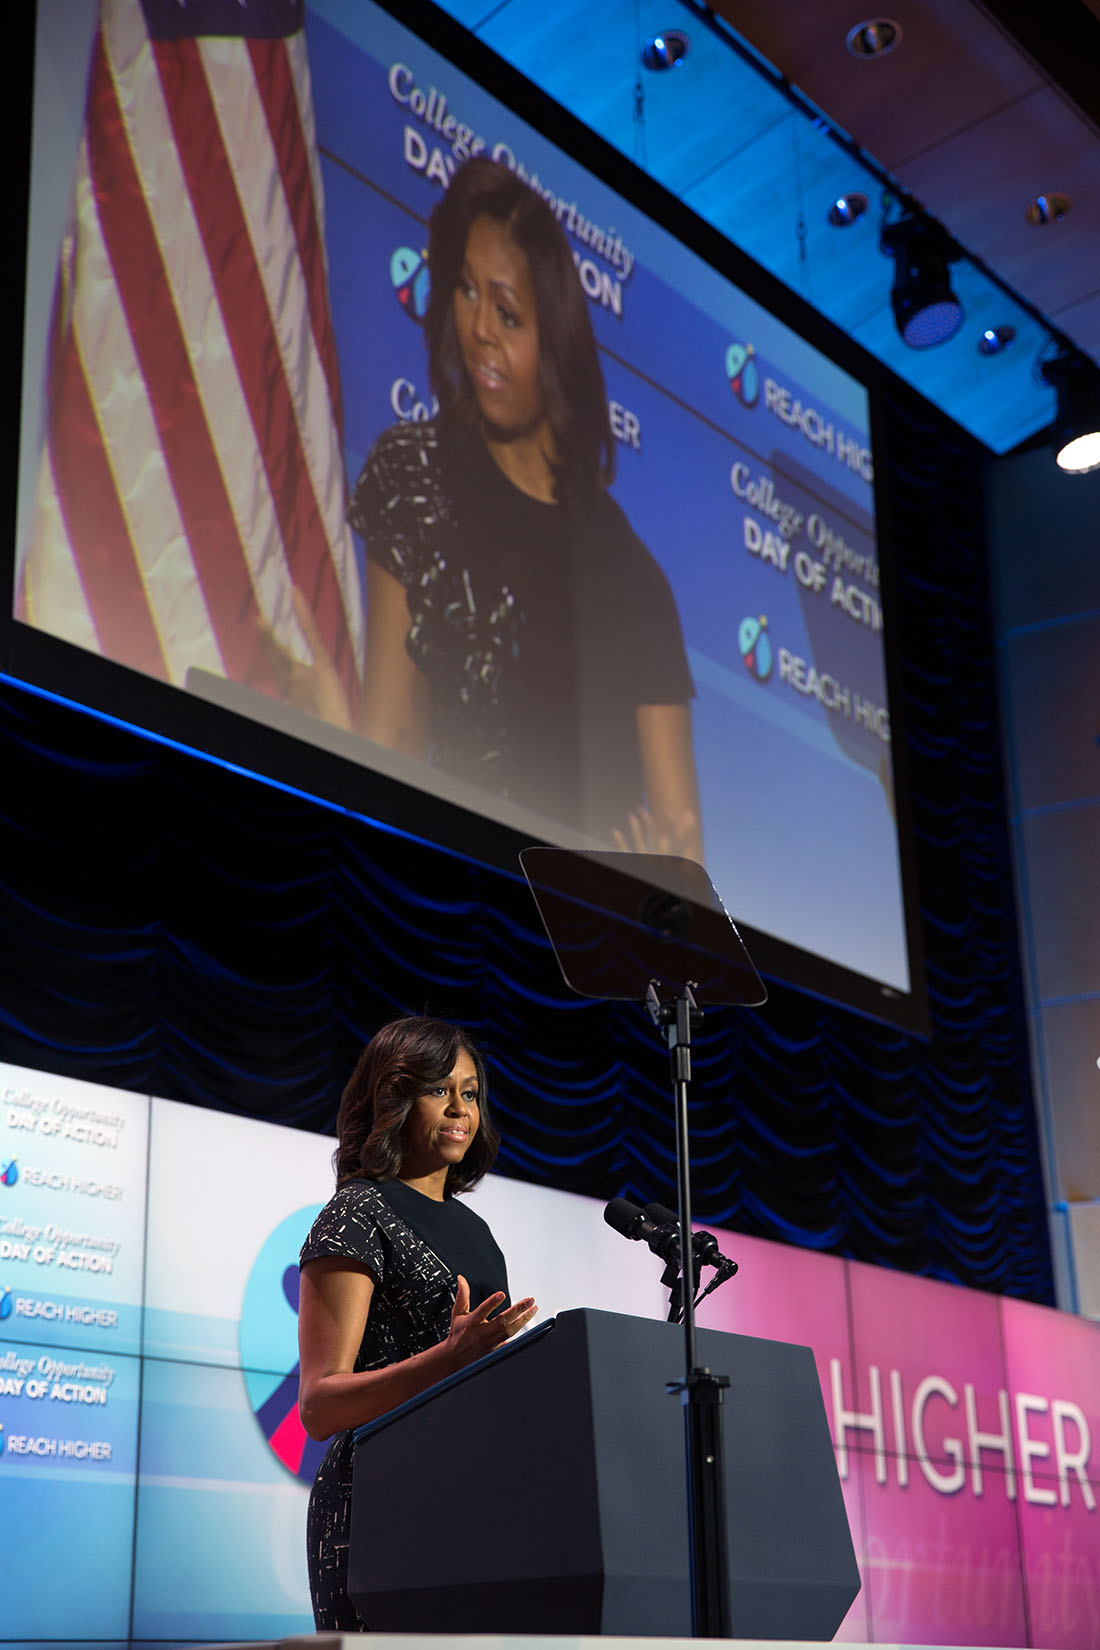 The First Lady Addresses the College Summit